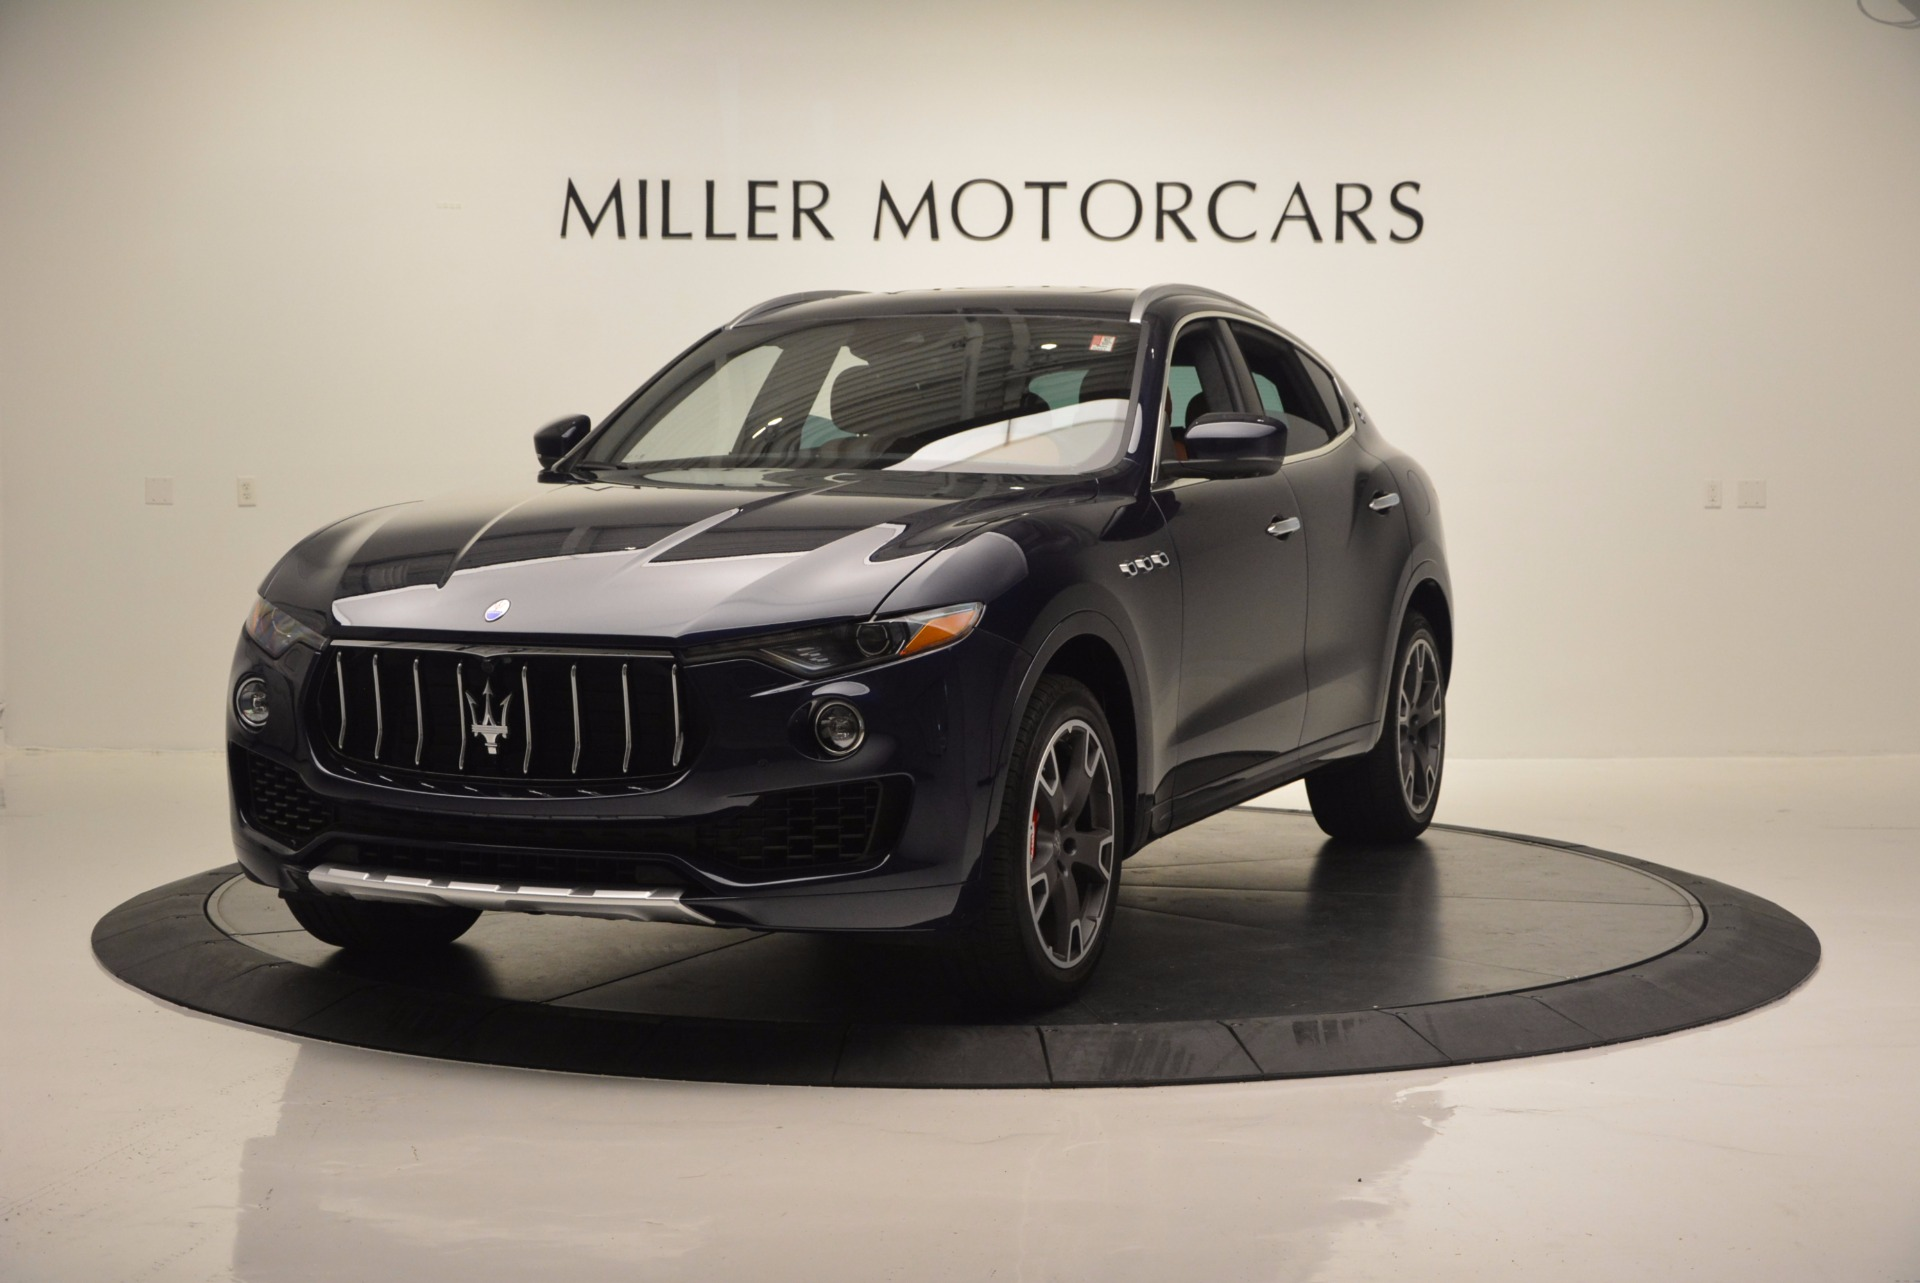 Used 2017 Maserati Levante S For Sale In Greenwich, CT. Alfa Romeo of Greenwich, 7331 752_main